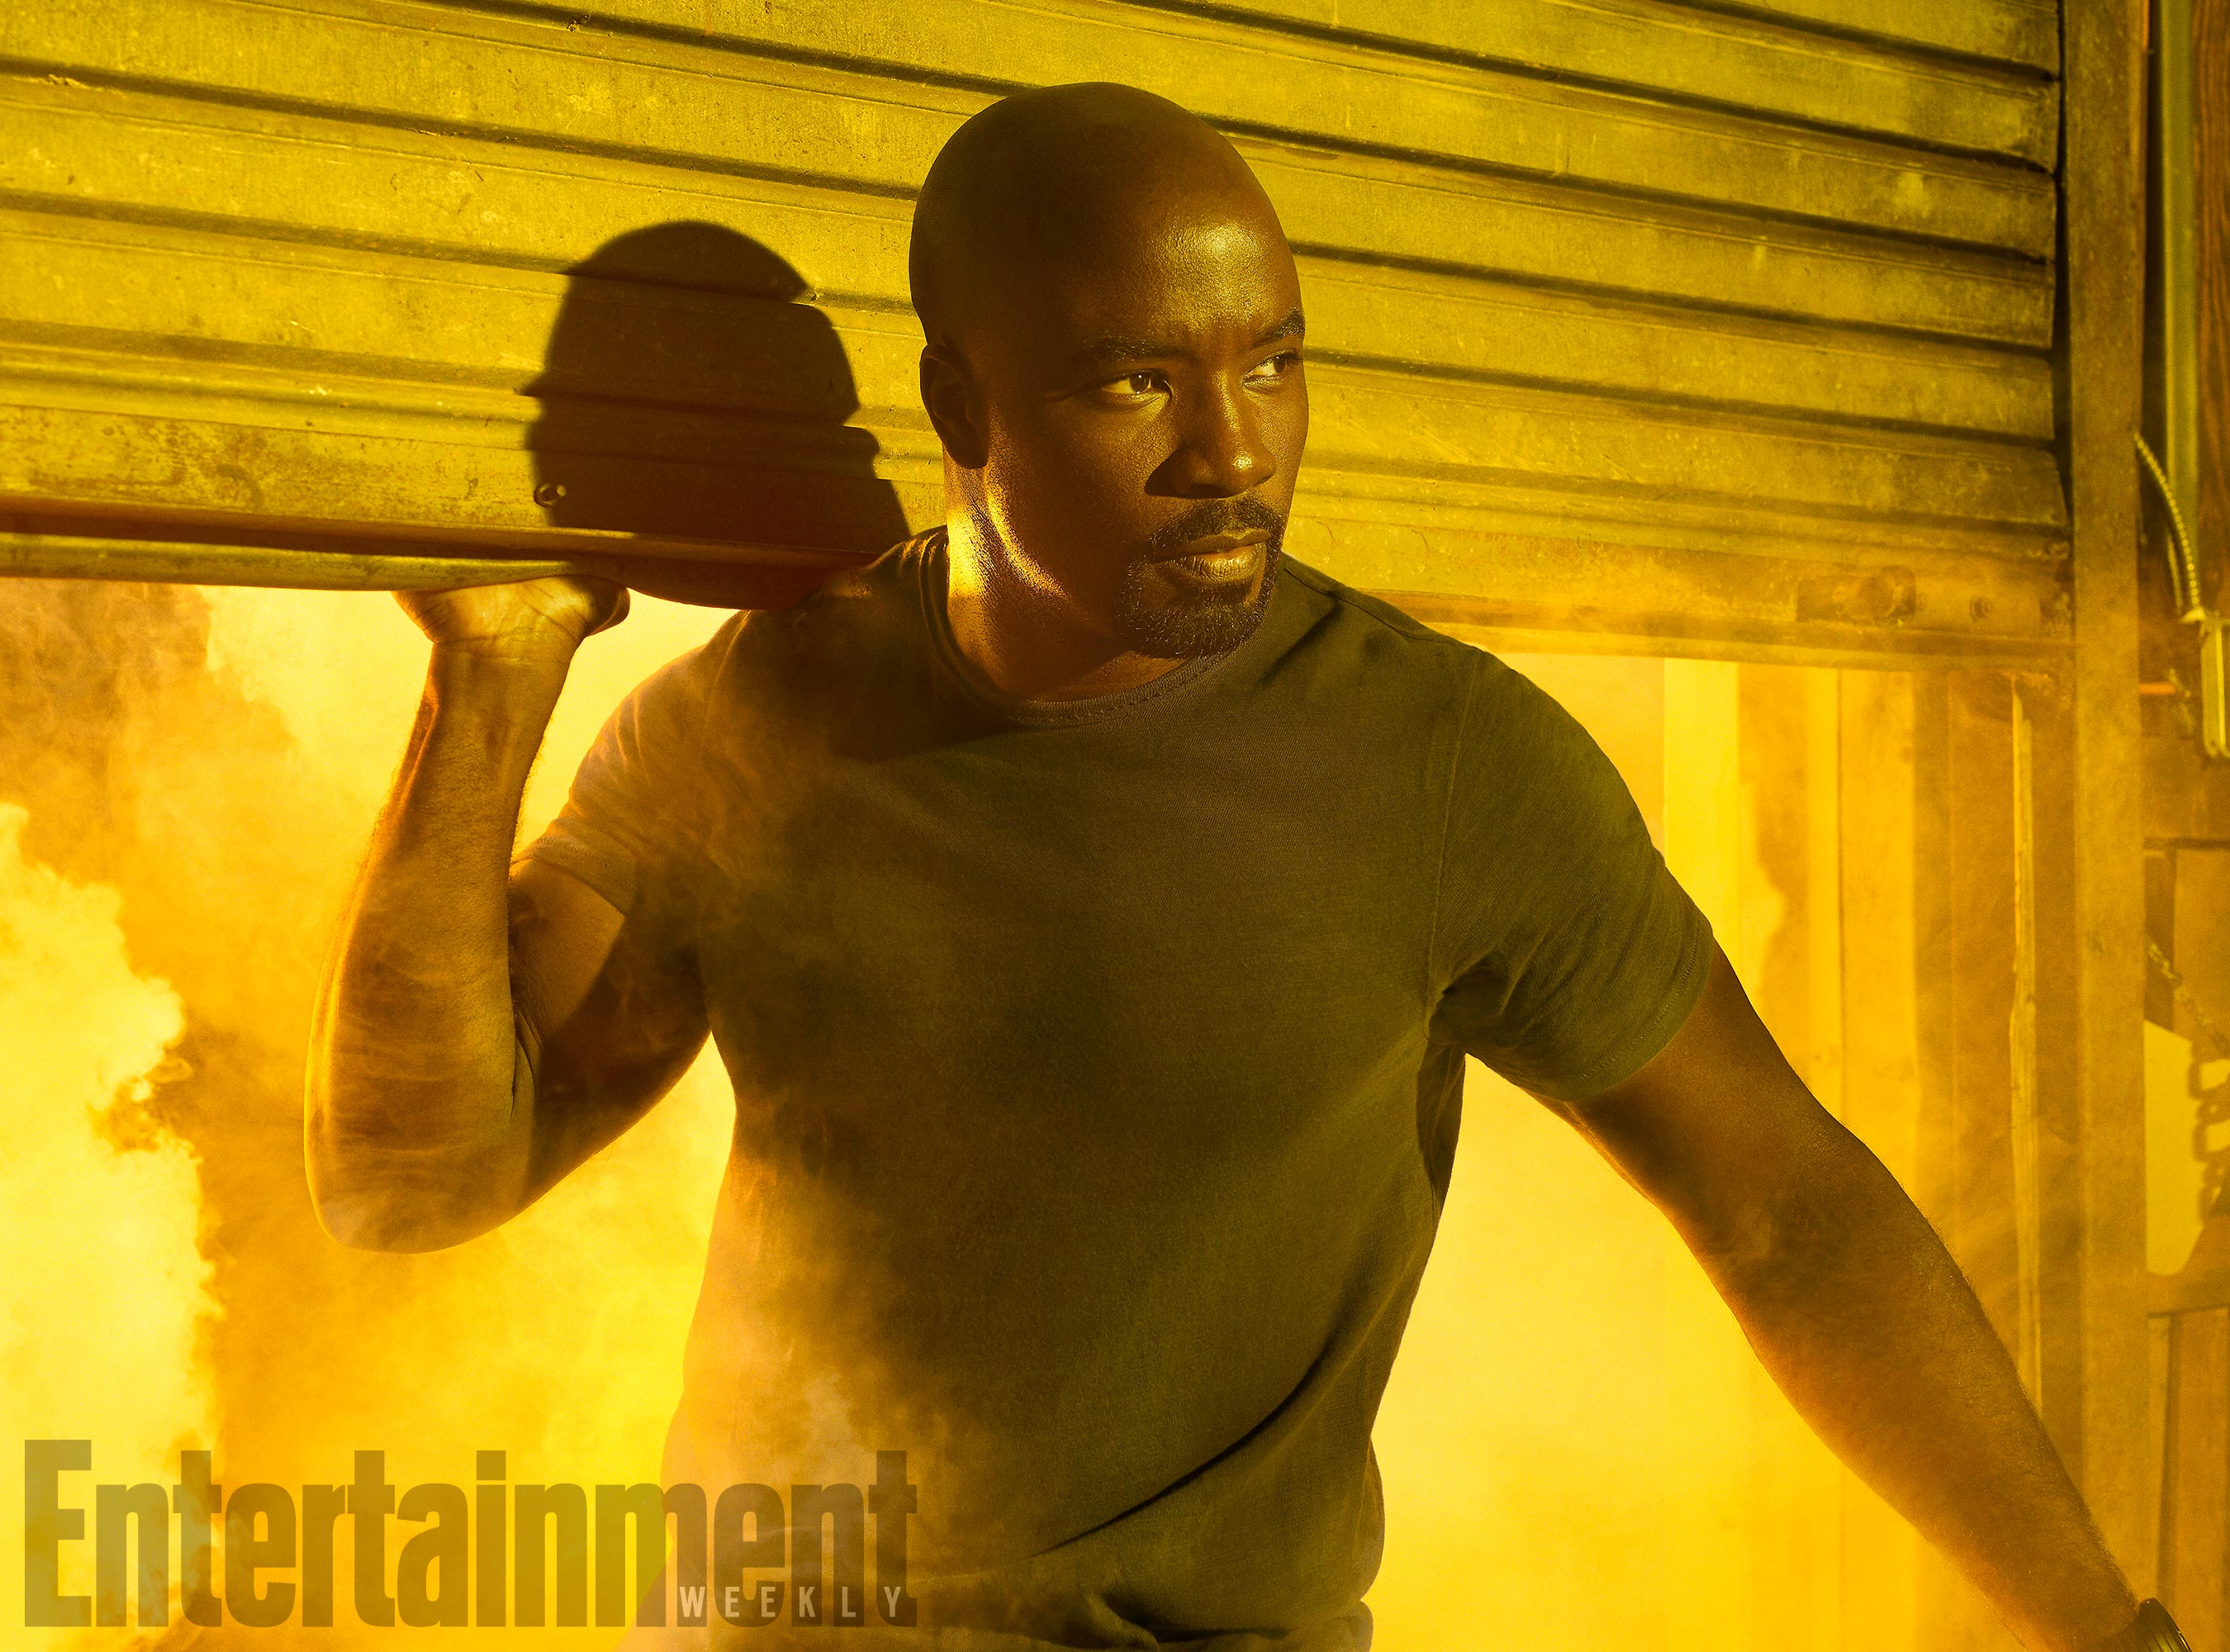 The Defenders, Mike Colter (as Luke Cage), photographed for Entertainment Weekly on December 10th, 2016, by Finlay Mackay in Brooklyn, New York. Costume Designer: Stephanie Maslansky, Wardrobe Supervisor: Pahelle Latino, Makeup Head: Sarit Klein, Key Makeup Artist: Kaela Dobson, Hair Department Head: Pamela May, FX Makeup: Brian Spears, Prop Stylist: Charlot Malmlof